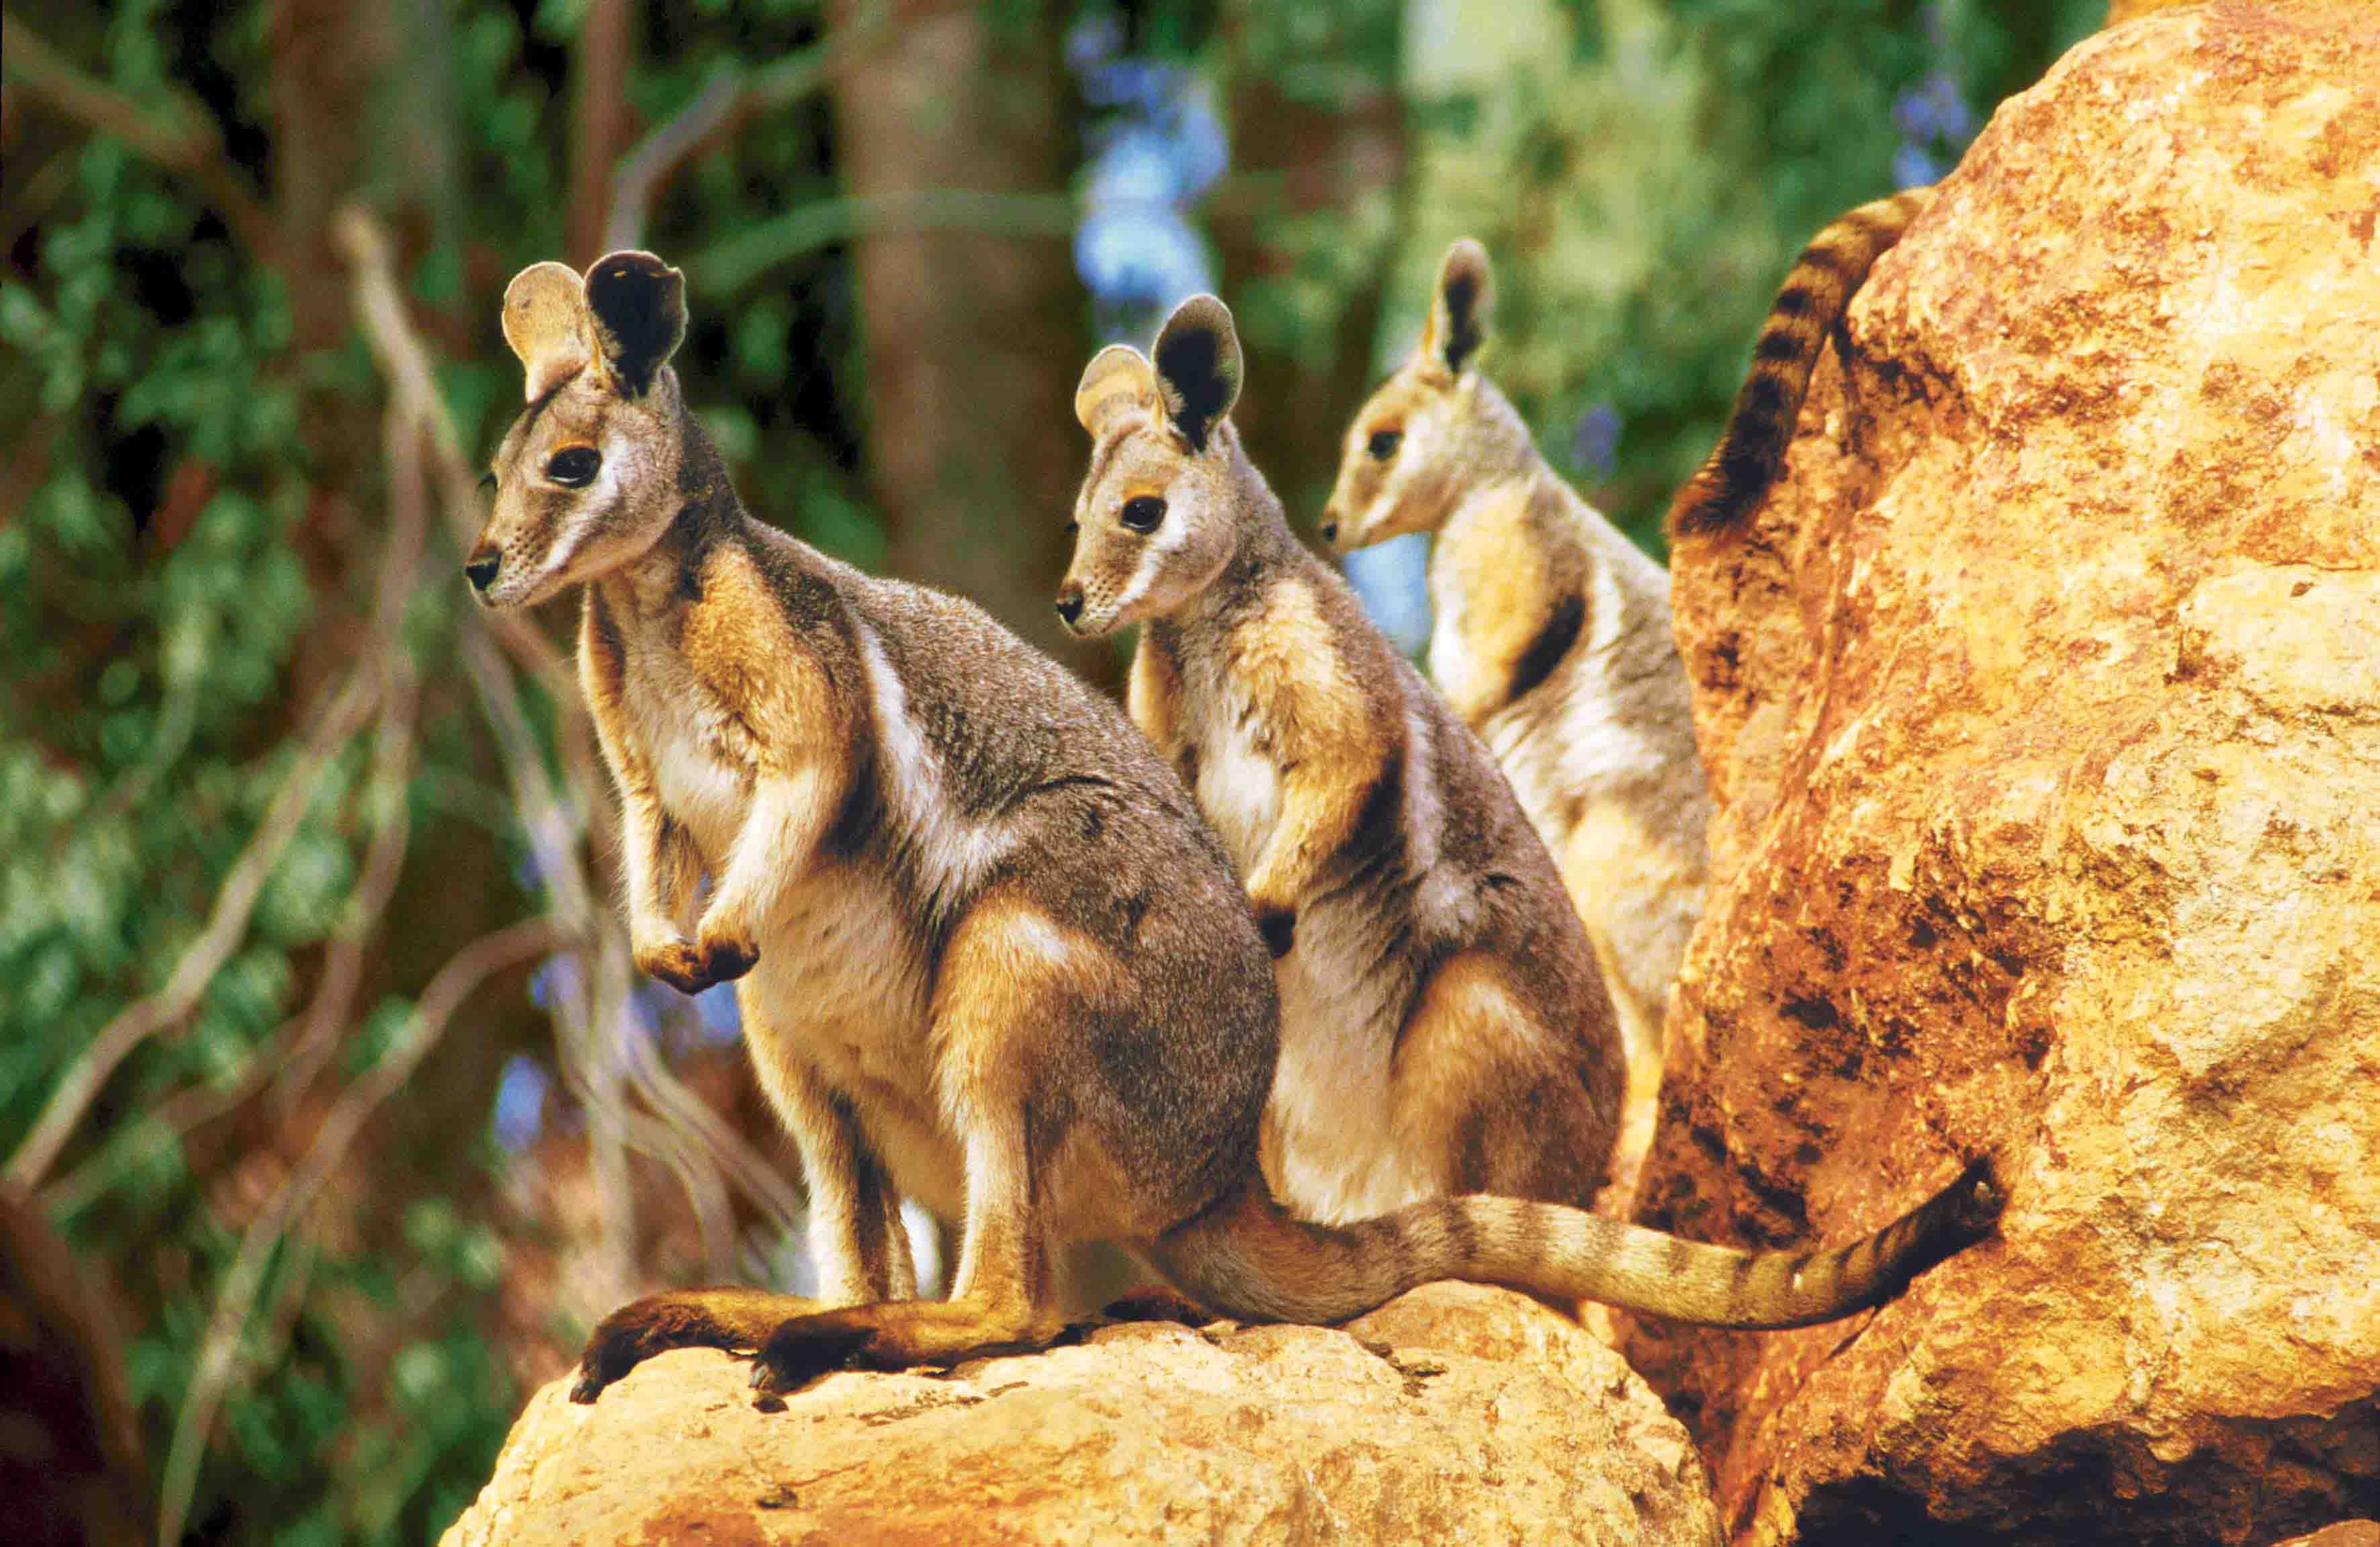 Kangaroo Wallpaper Hd 4 Rock Wallaby Hd Wallpapers Backgrounds Wallpaper Abyss